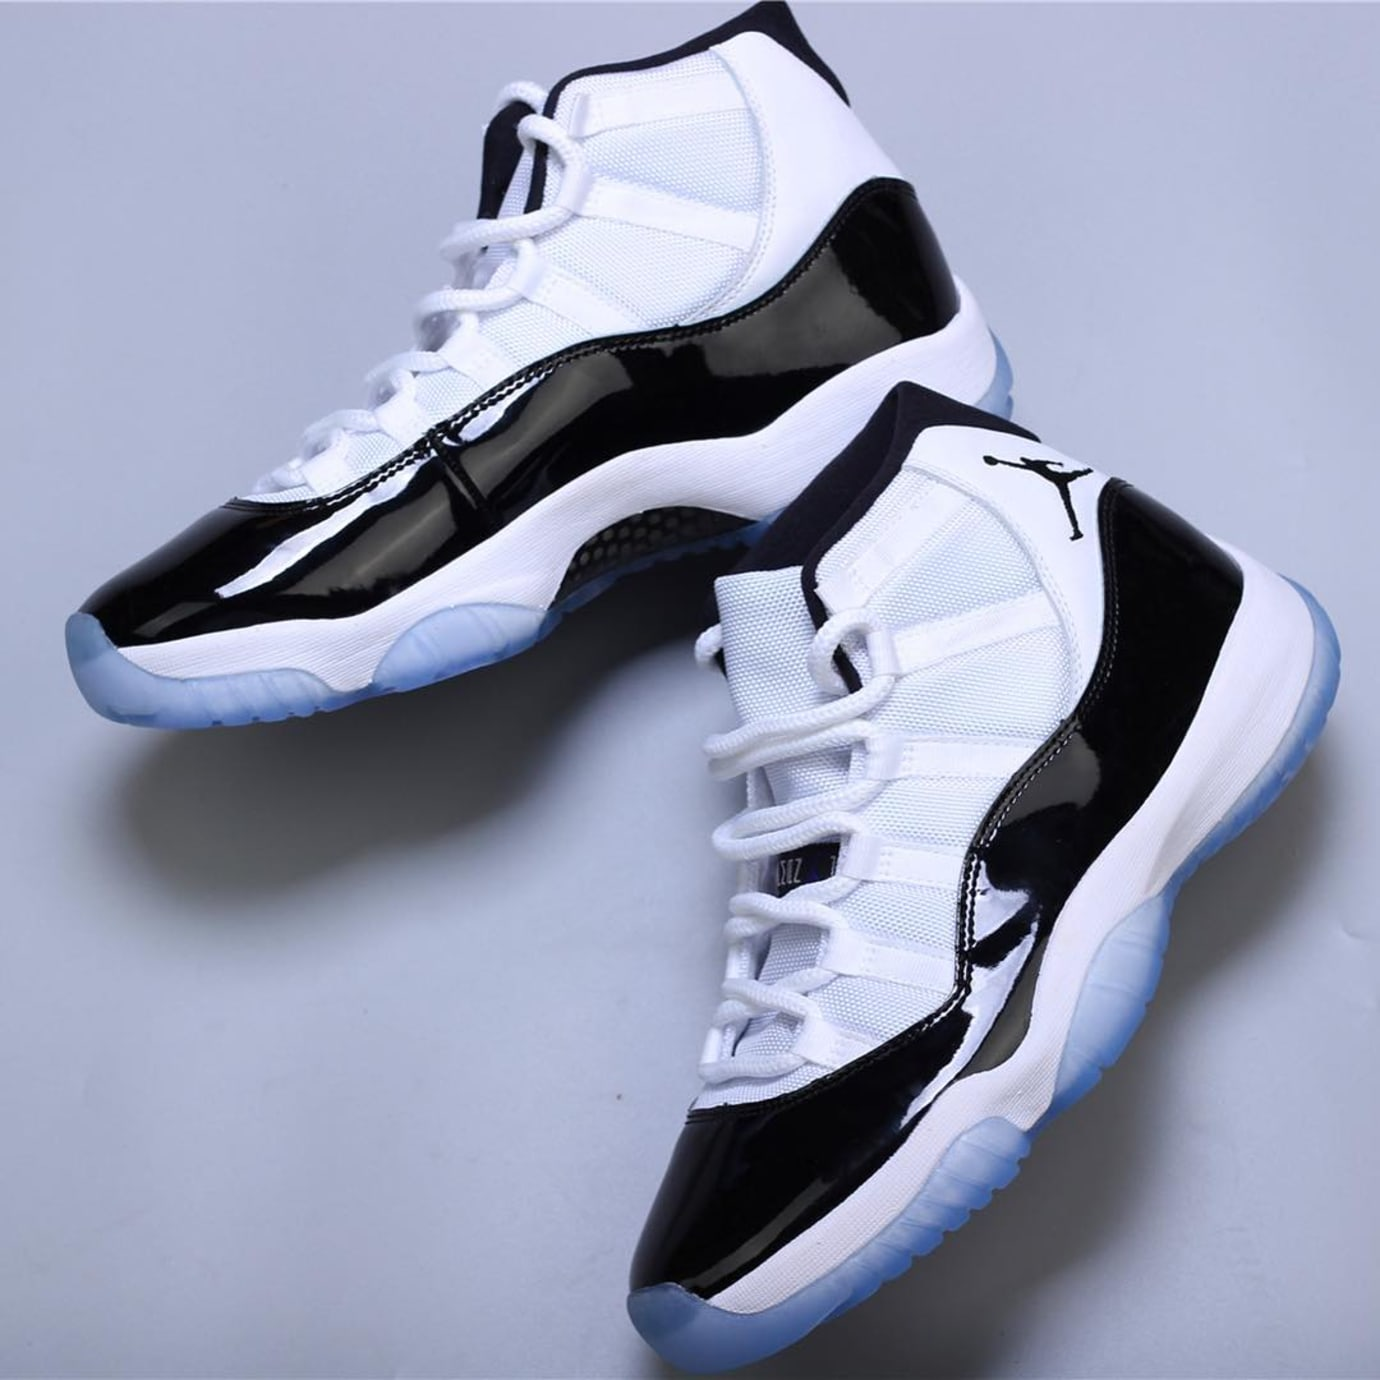 97af1db09fadd0 Image via hanzuying · Air Jordan 11 XI Concord 2018 Release Date 378037-100  Side